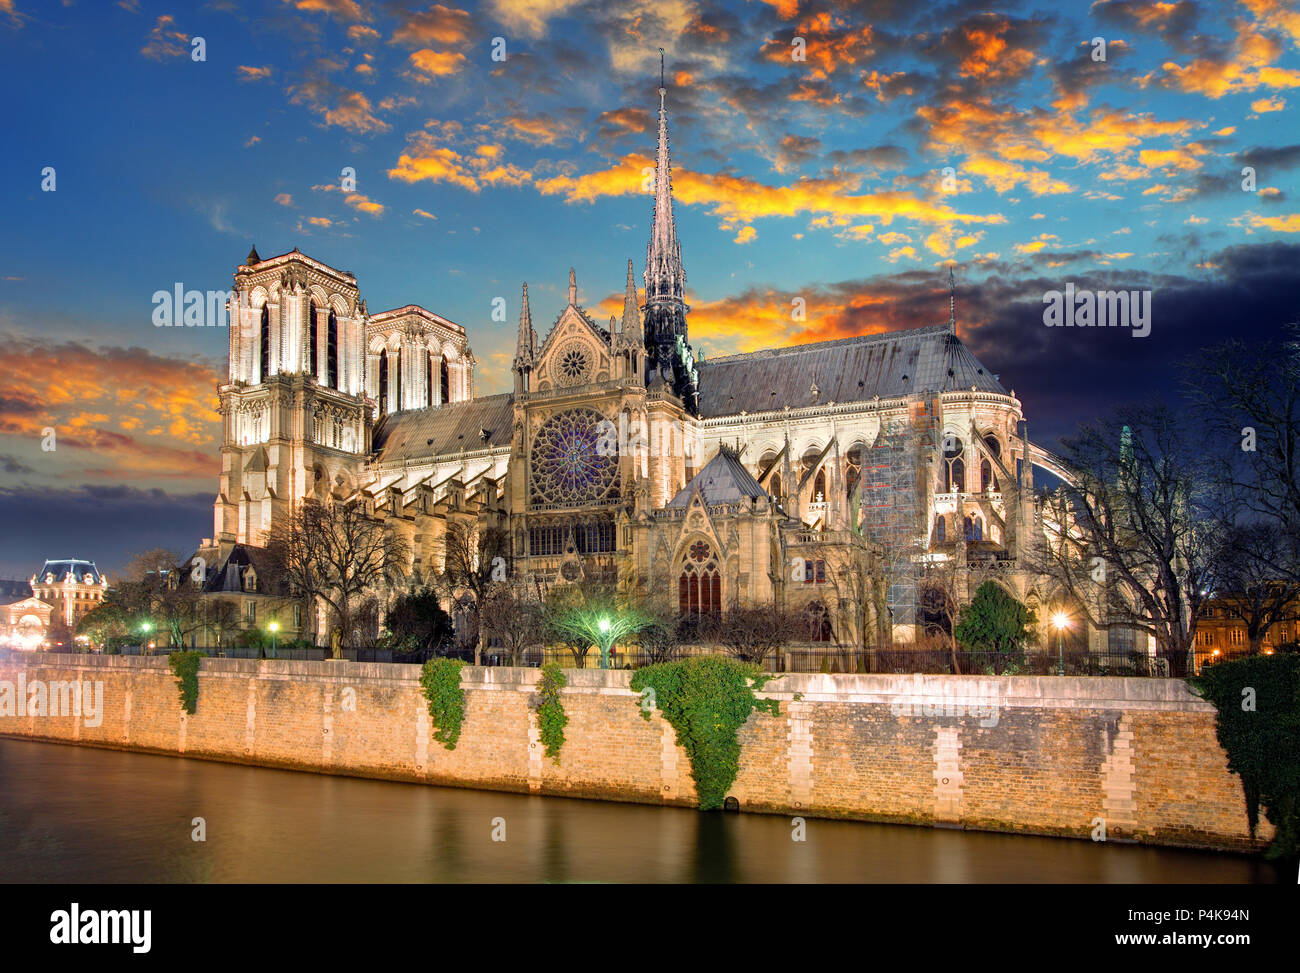 La Cathédrale Notre-Dame au crépuscule à Paris, France Photo Stock